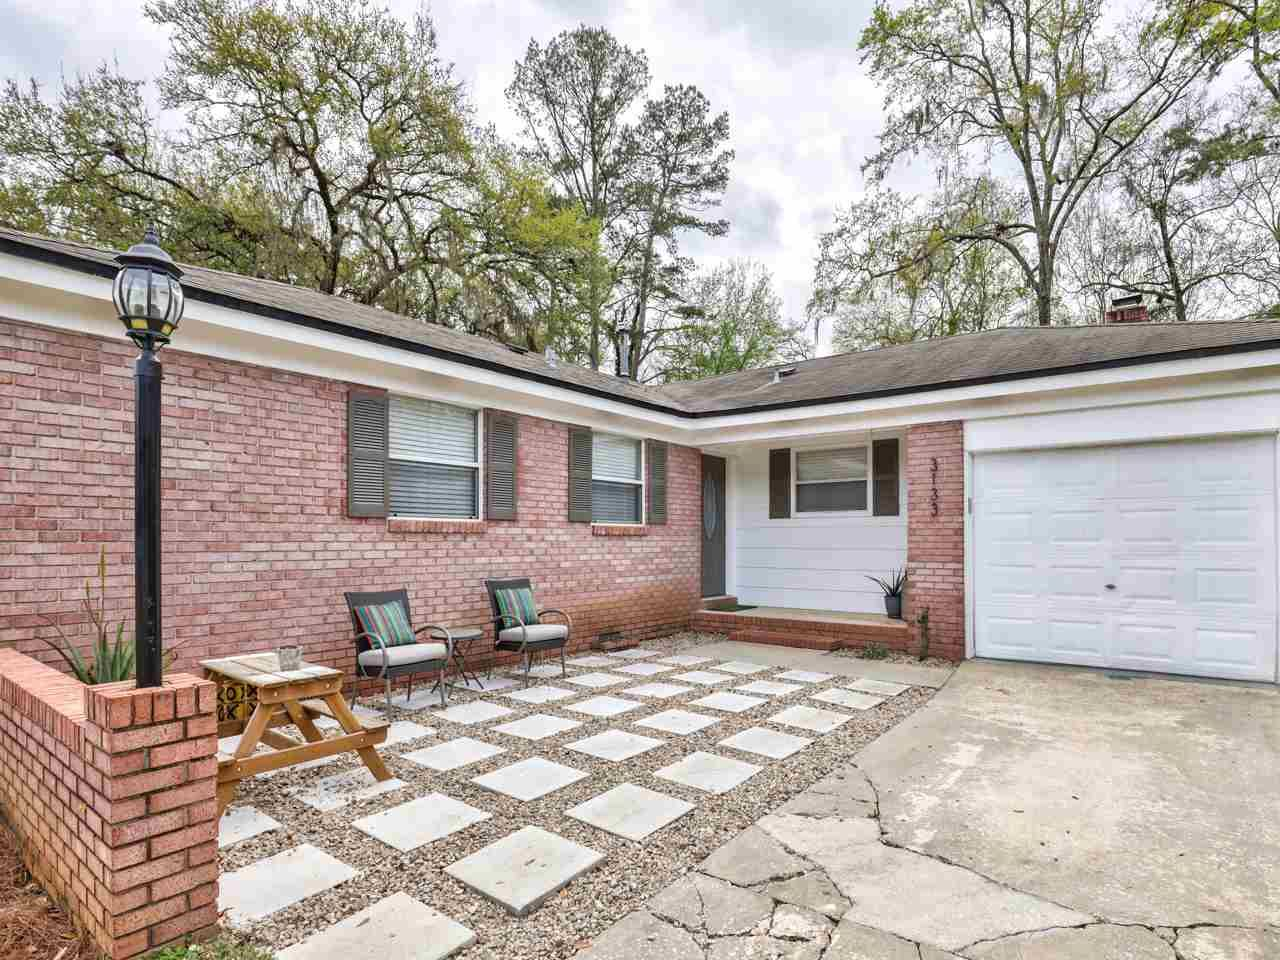 Photo of 3133 Tipperary Drive, TALLAHASSEE, FL 32309 (MLS # 316306)